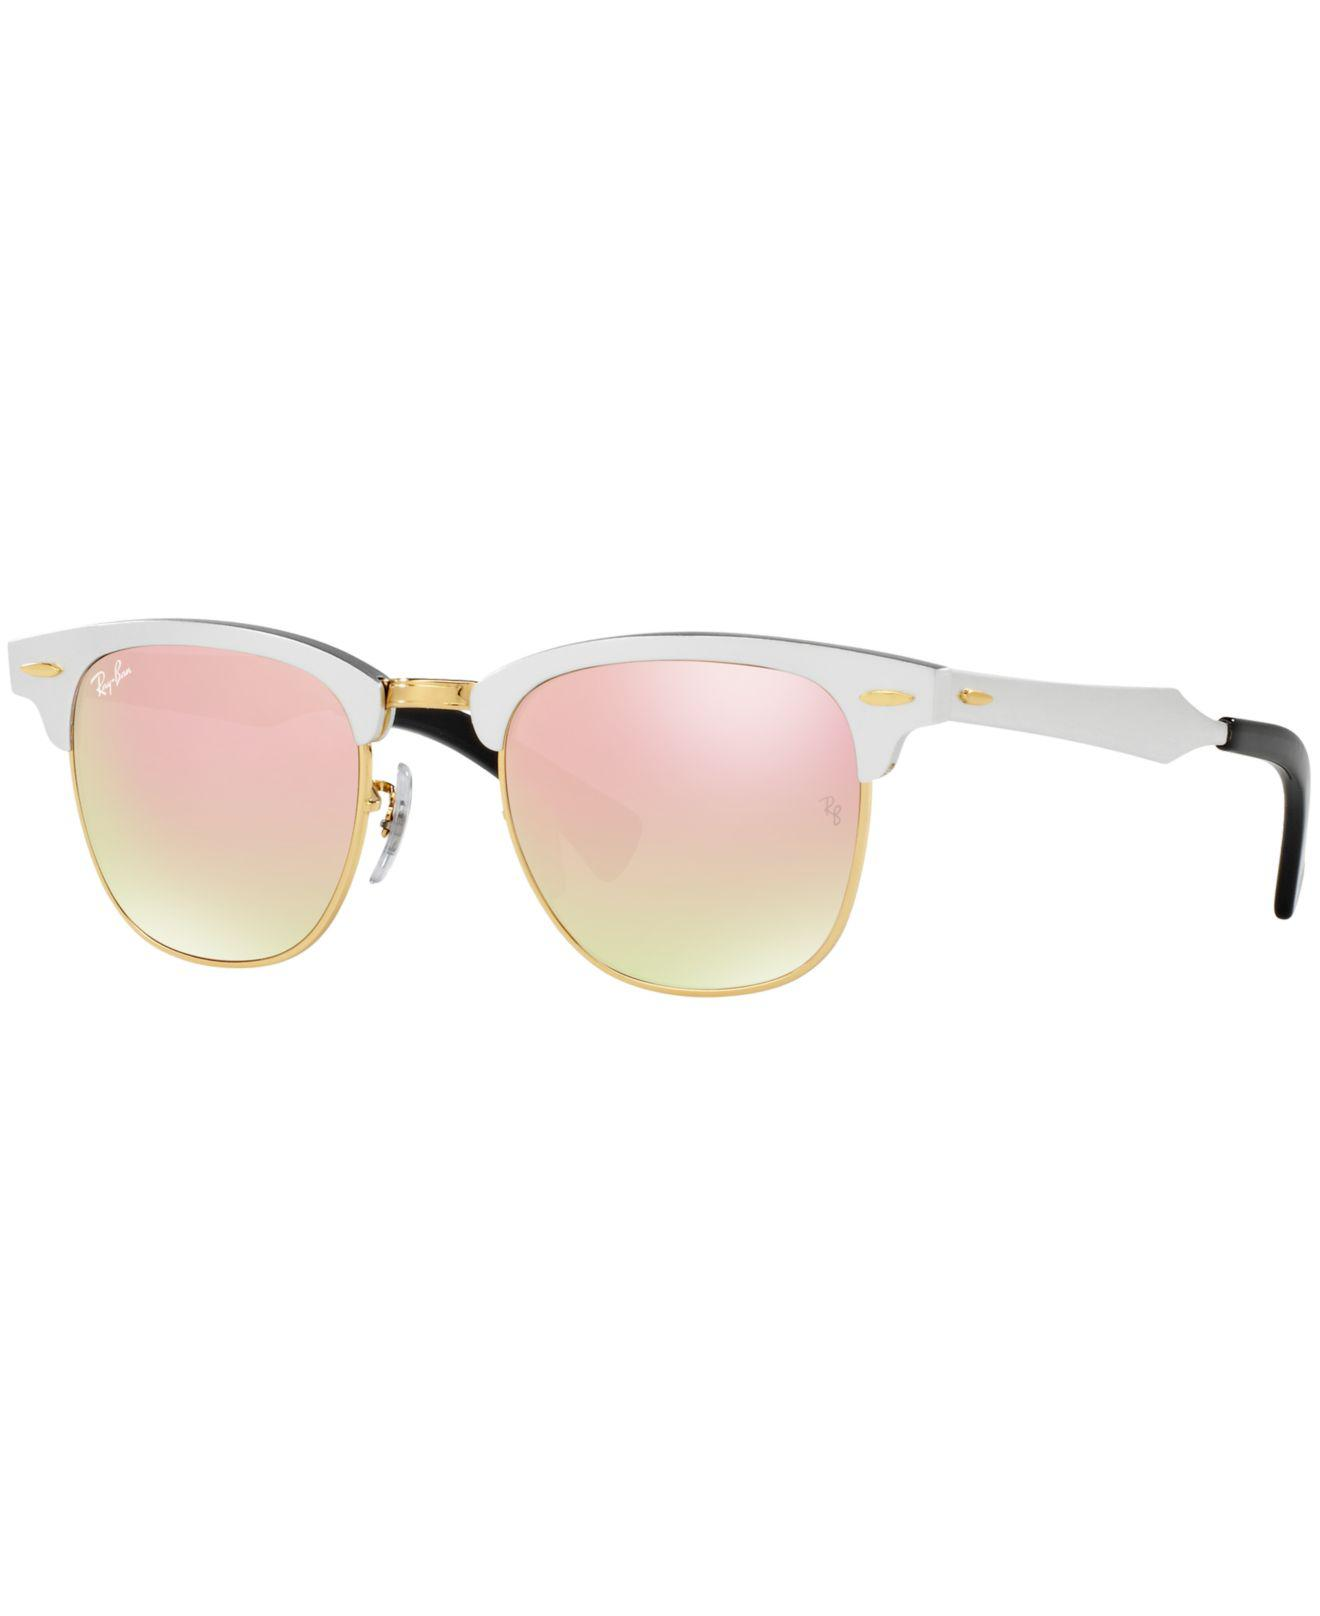 14dcd0f431 ... discount code for gallery. previously sold at macys womens clubmaster  sunglasses womens ray ban clubmaster